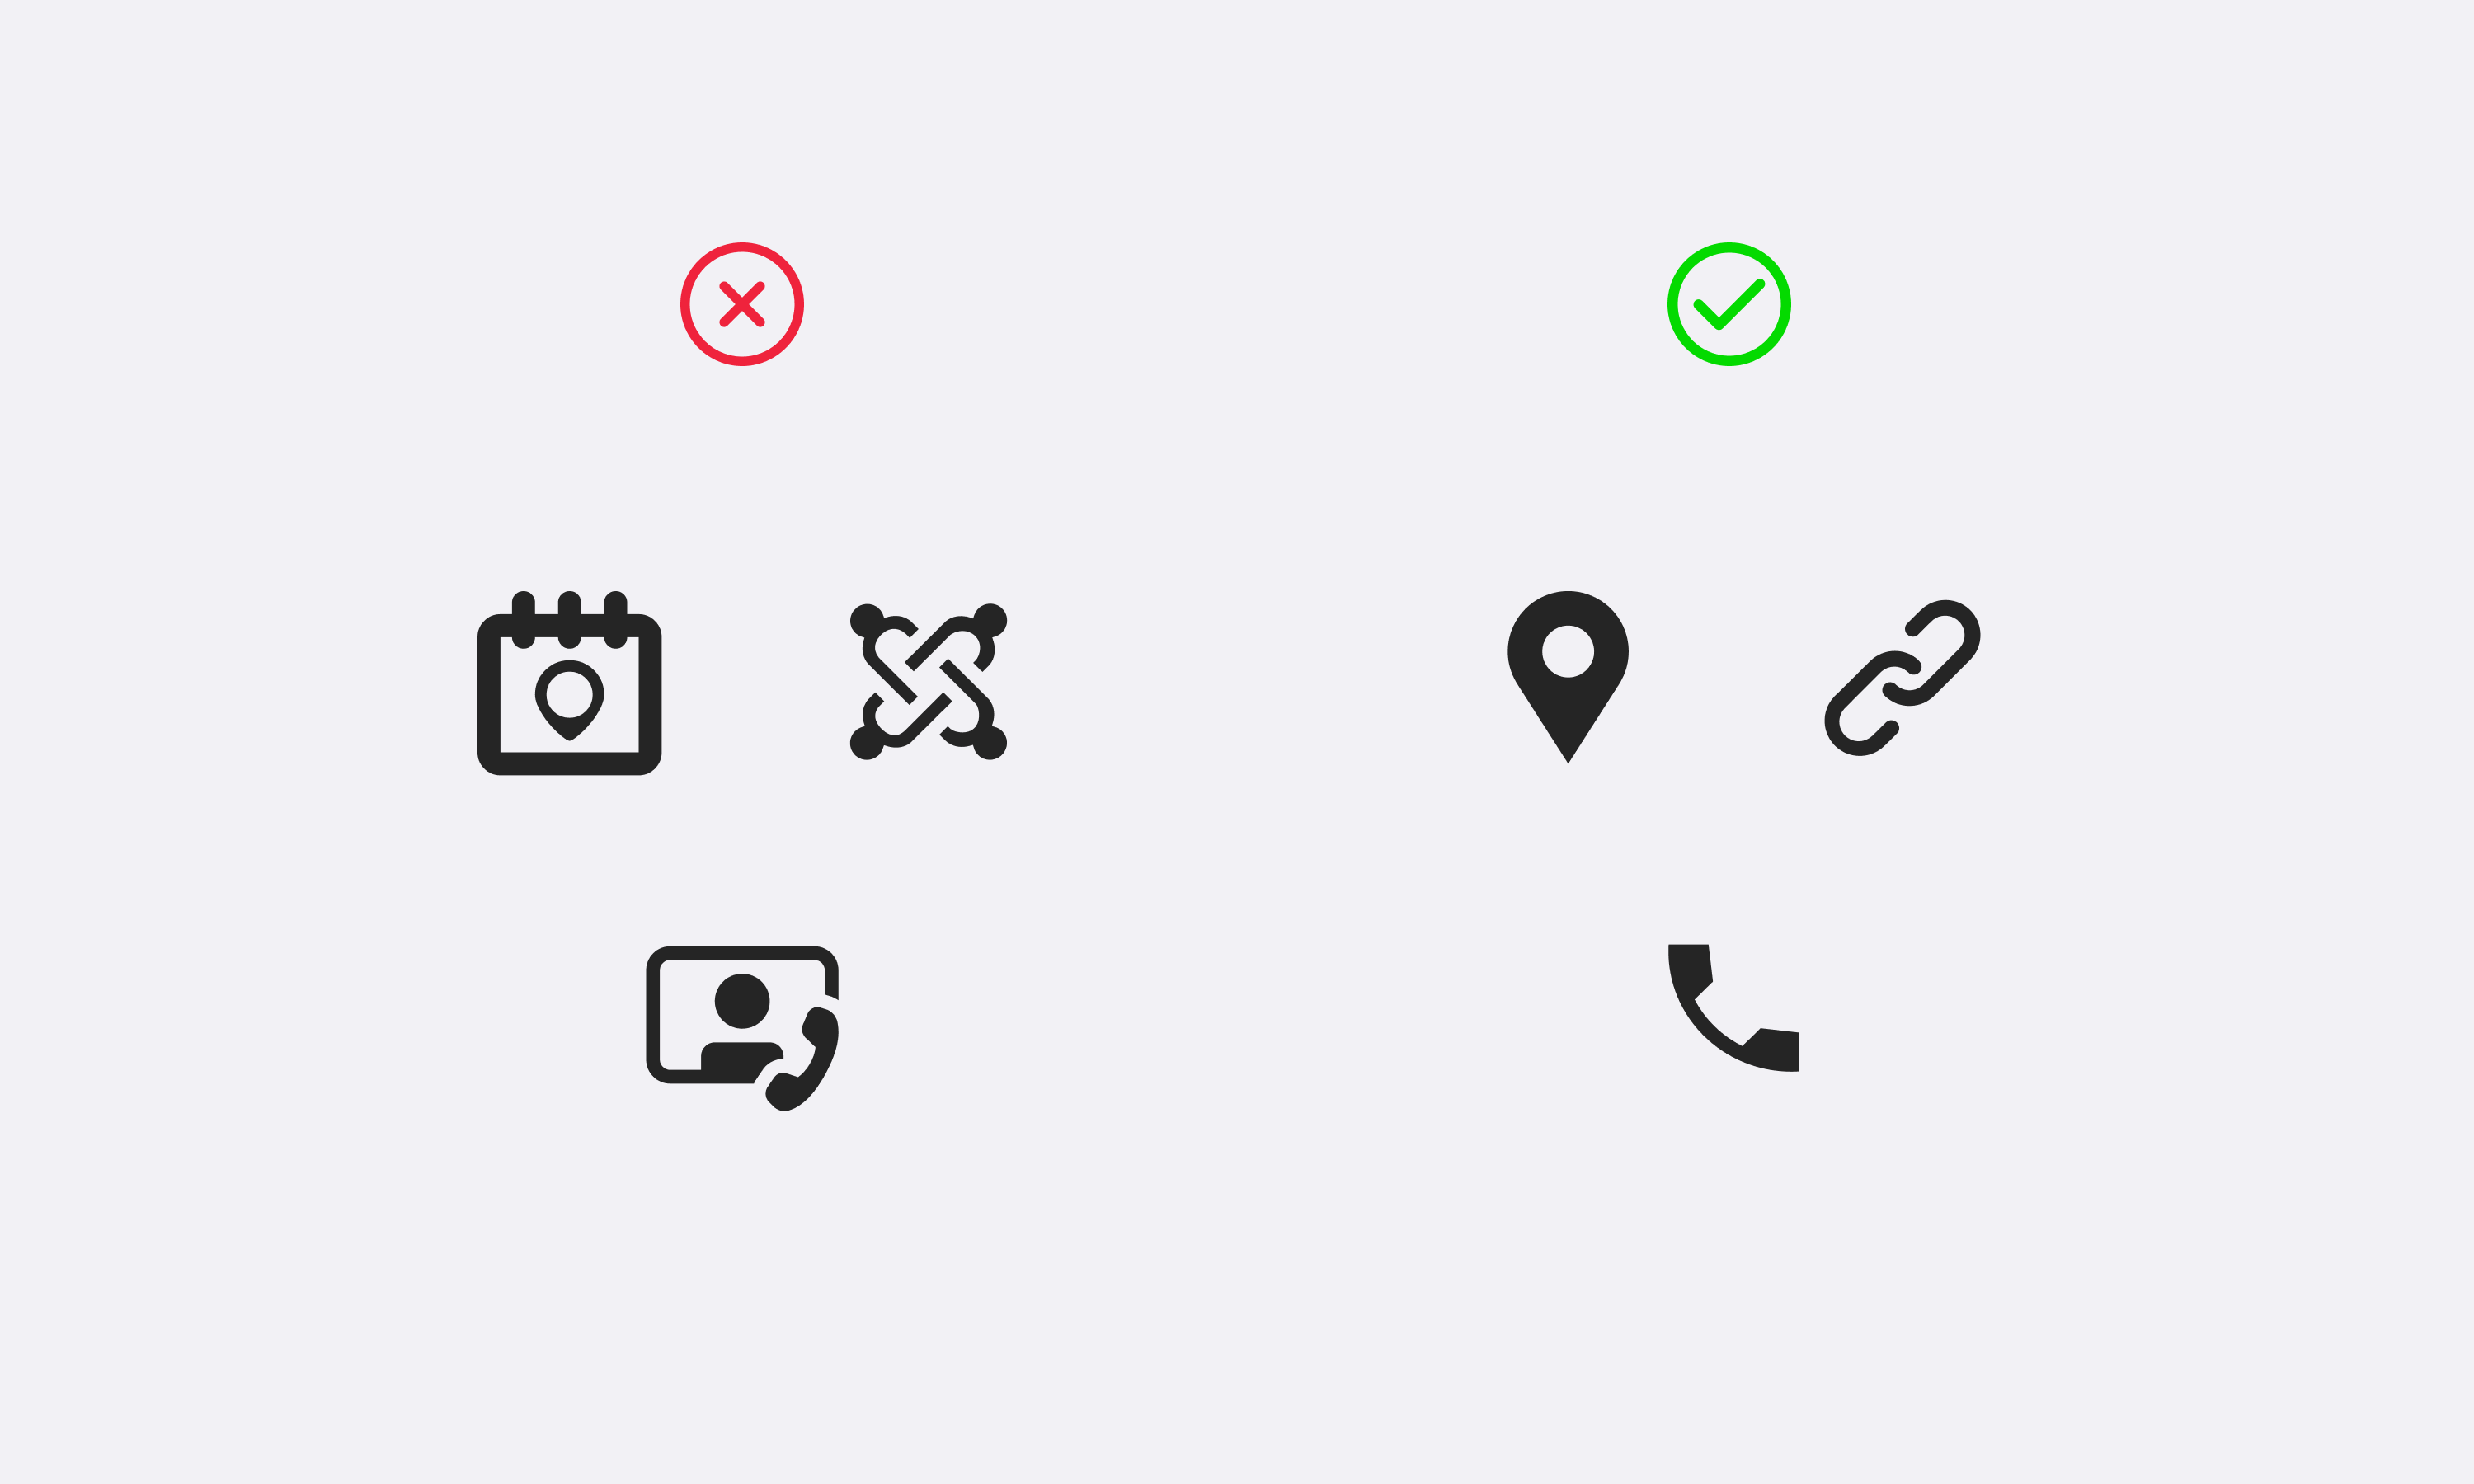 Using consistent and simple icons